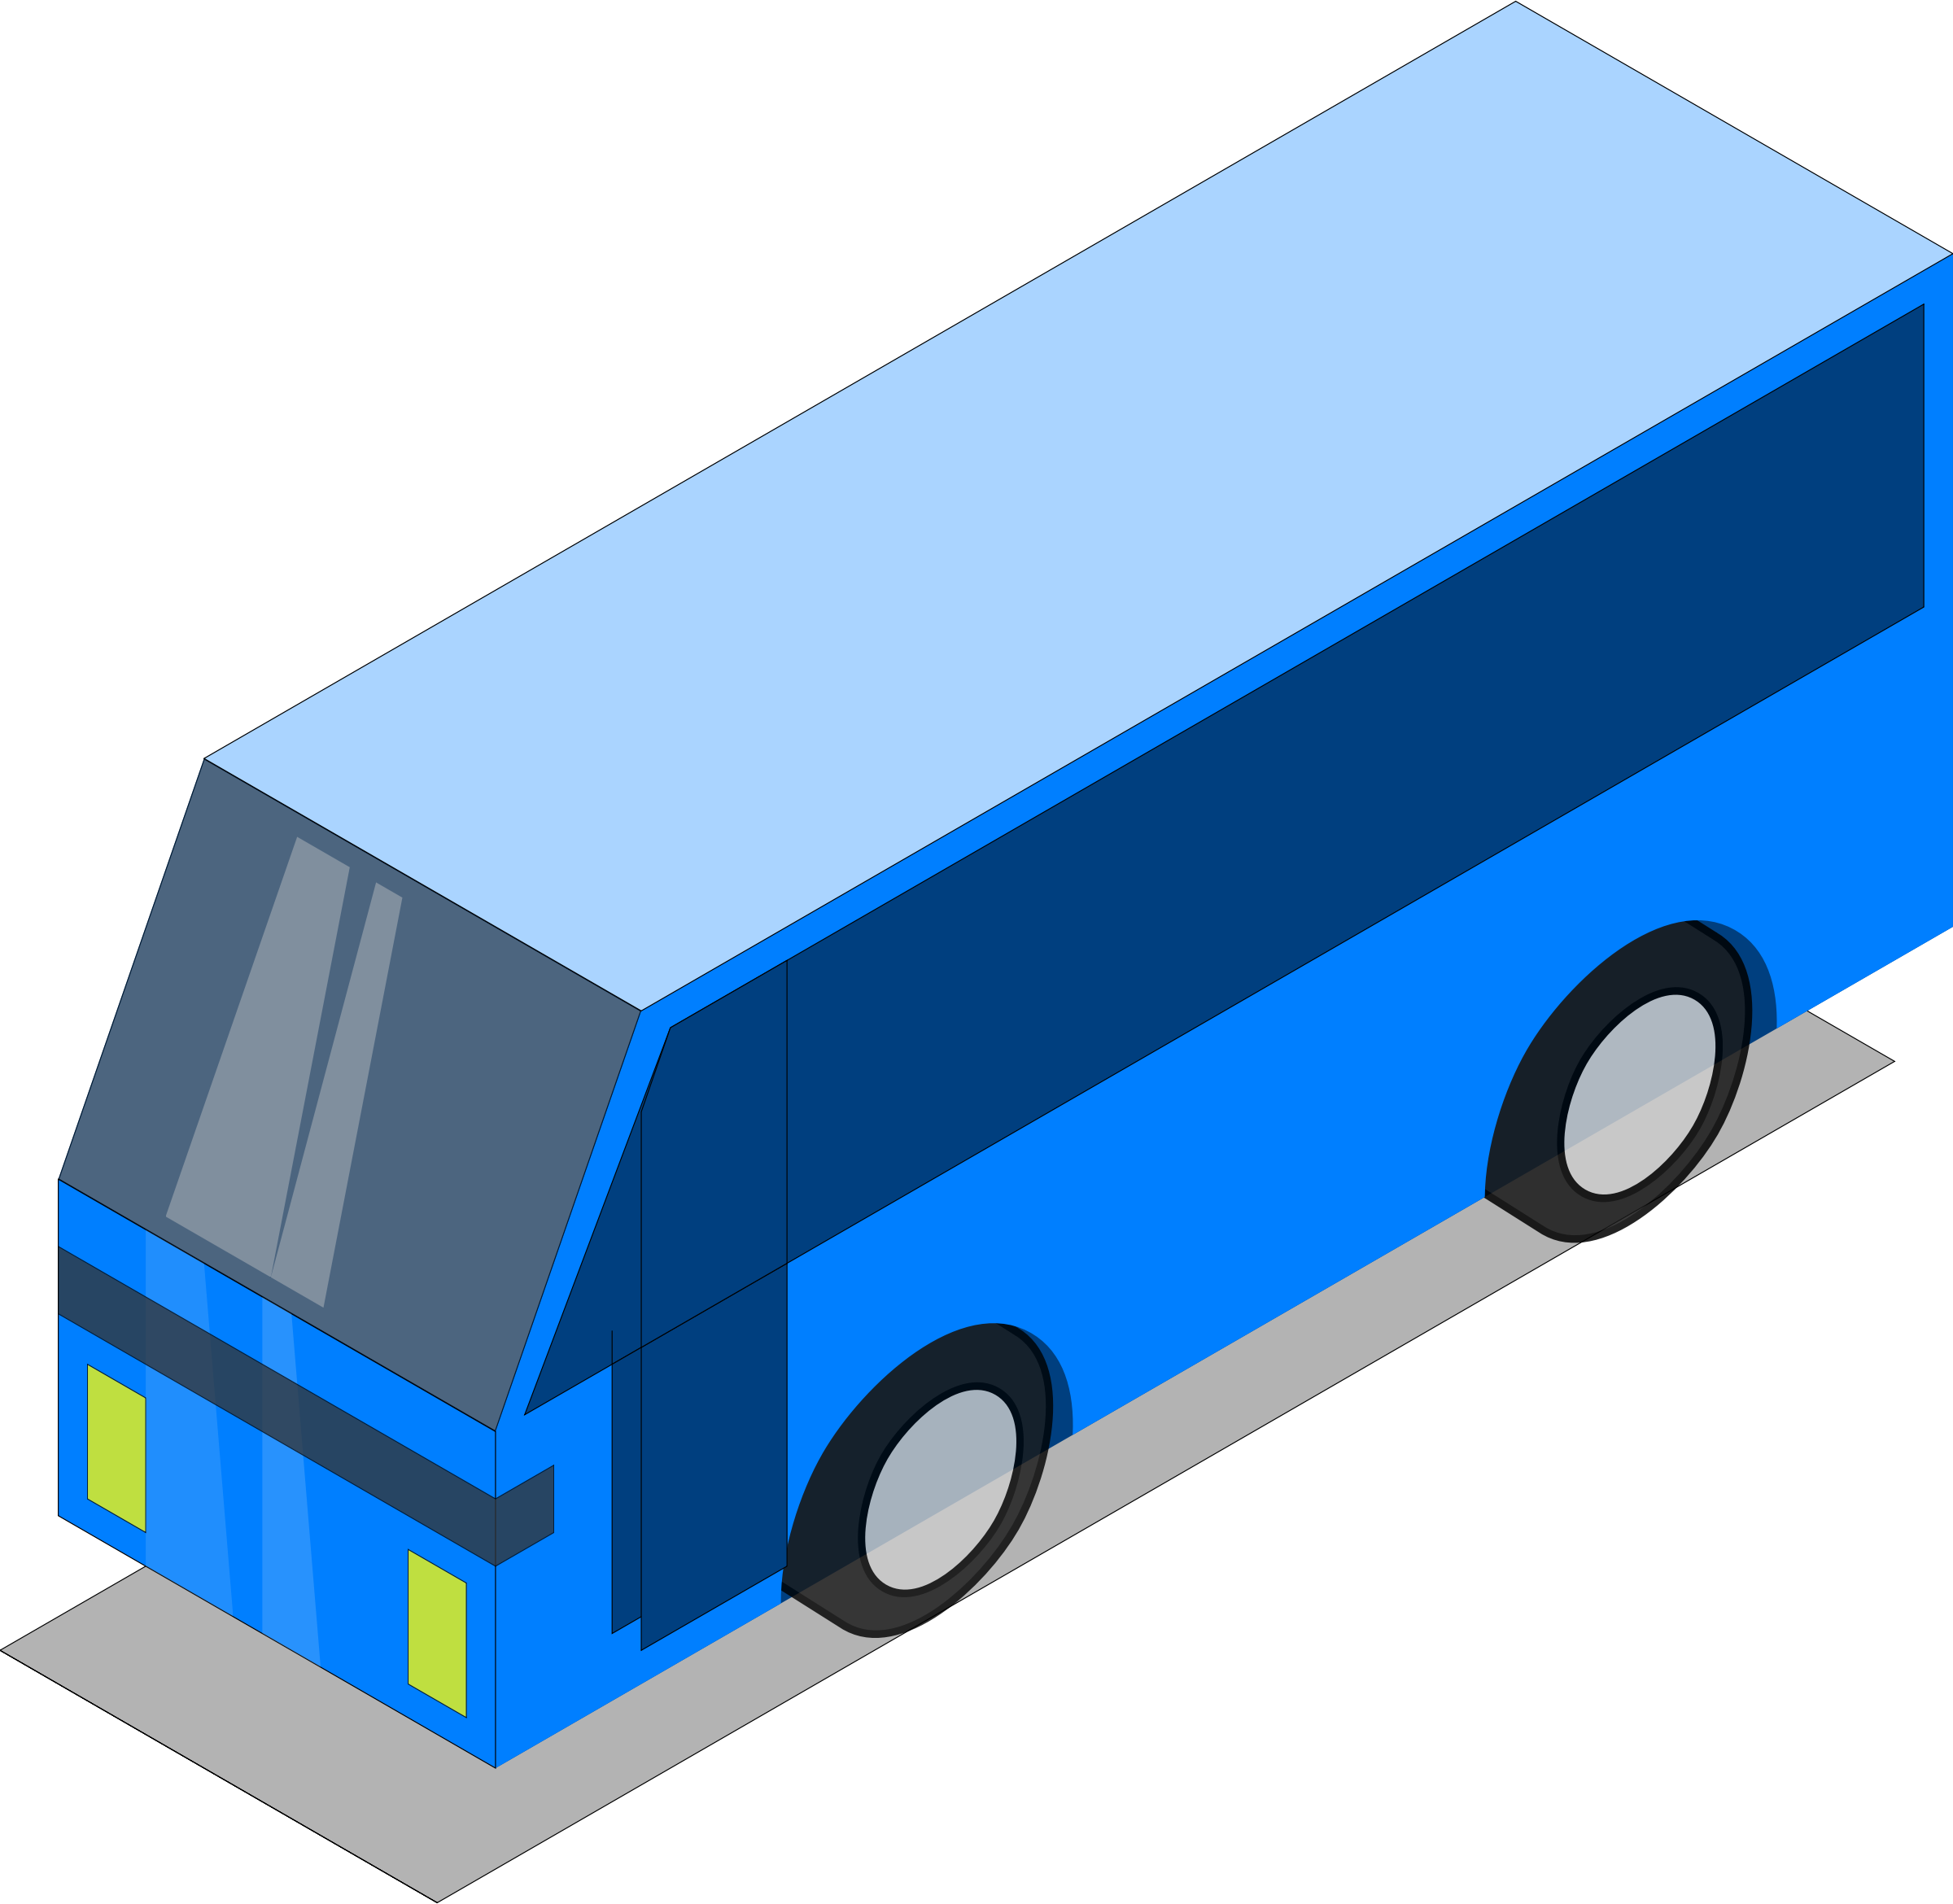 Clipart bus on road. Blue big image png